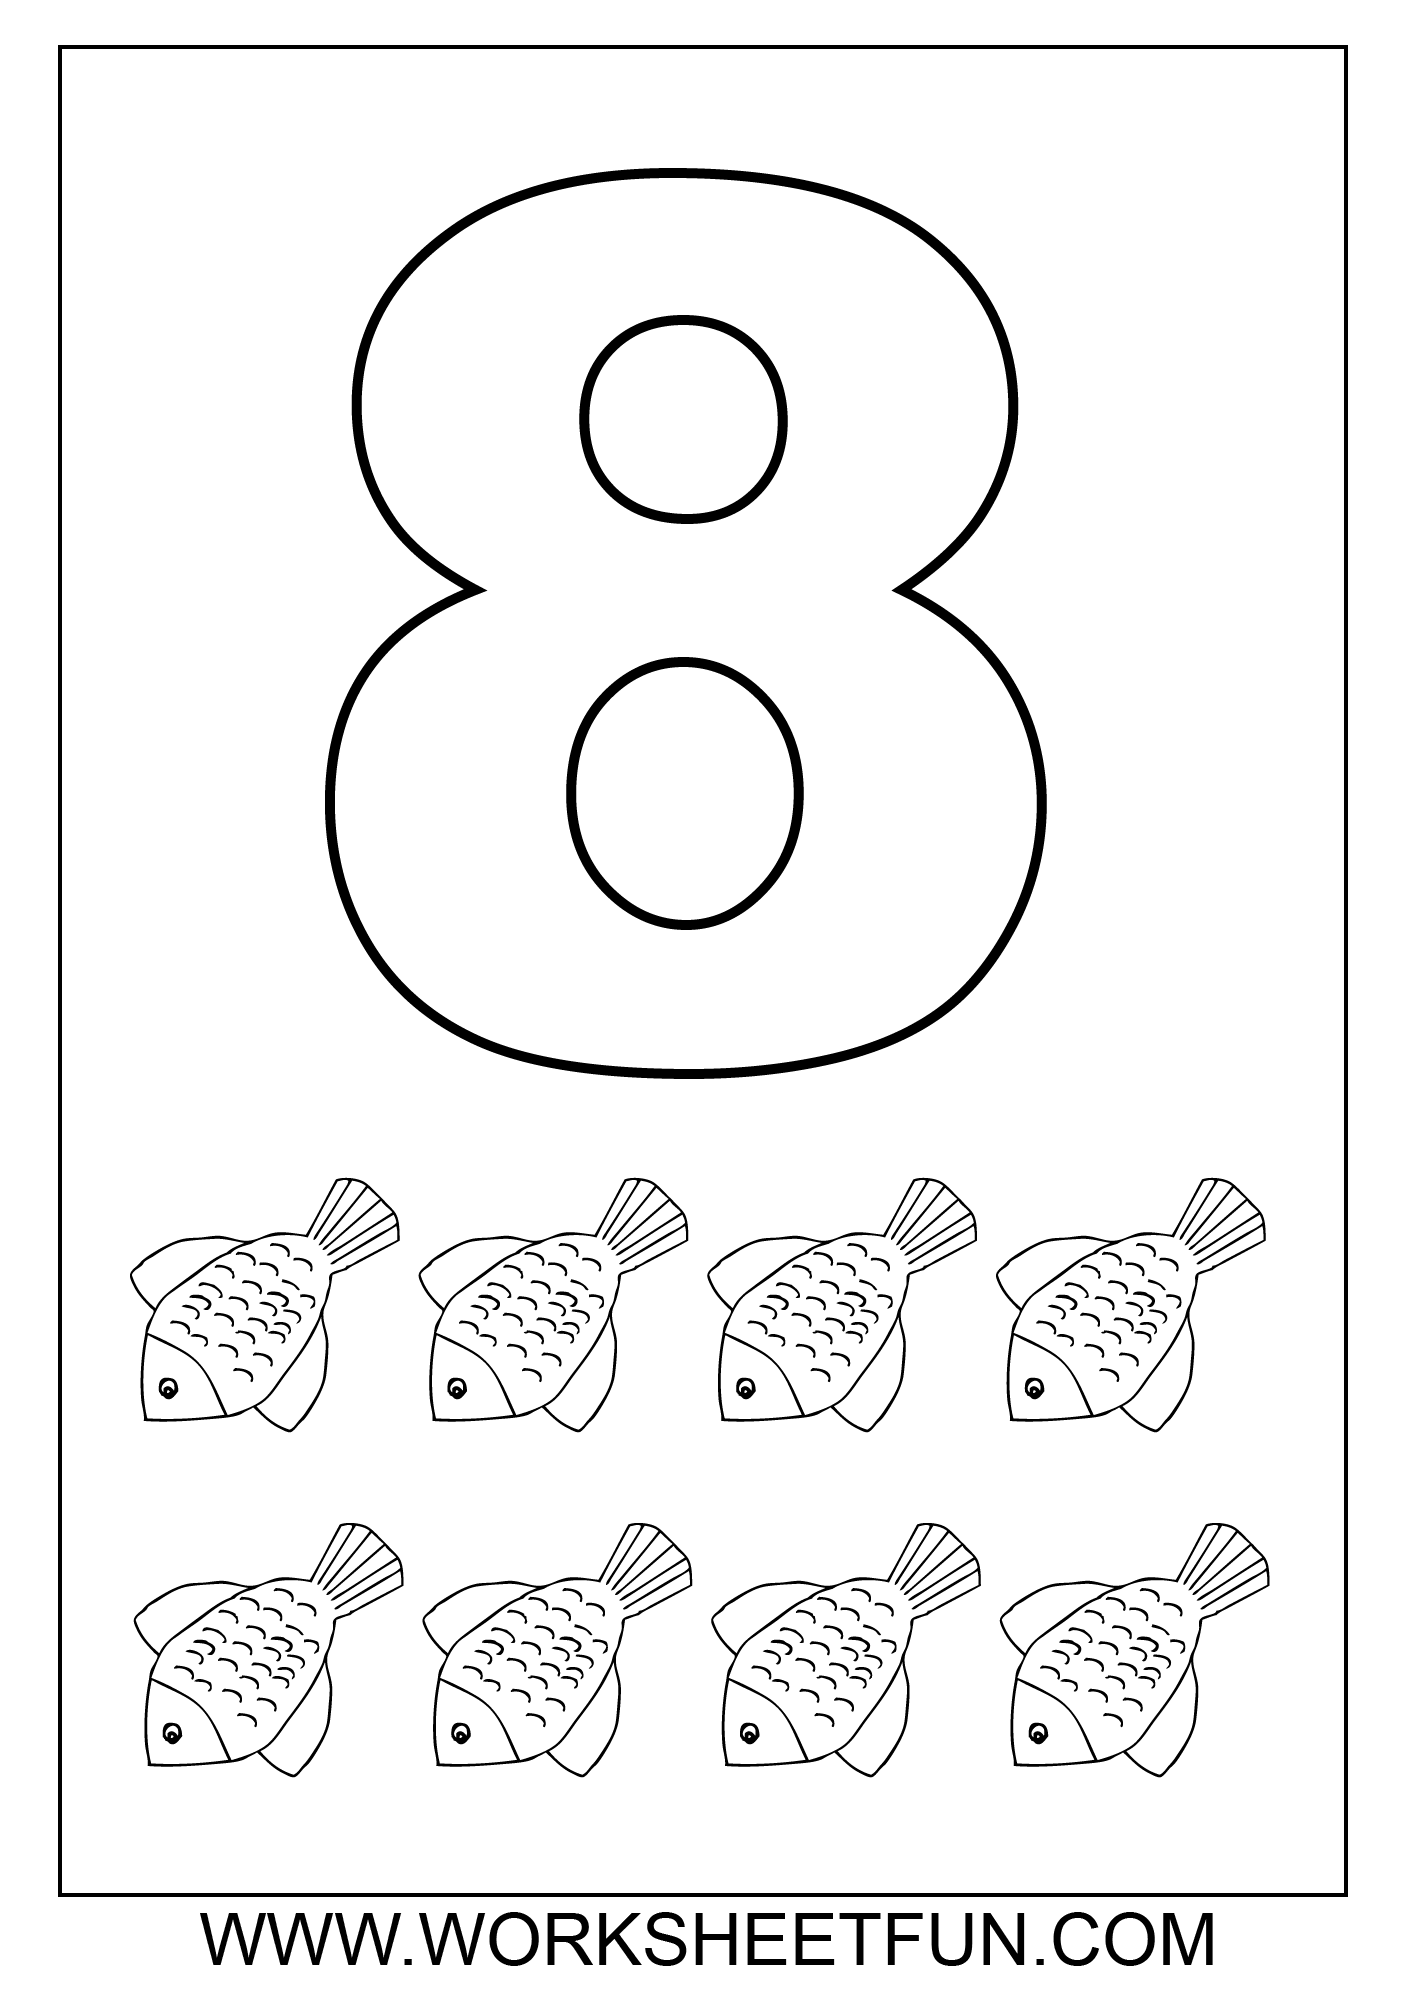 number 8 coloring pages 8 1 coloring pages kidsuki pages 8 coloring number